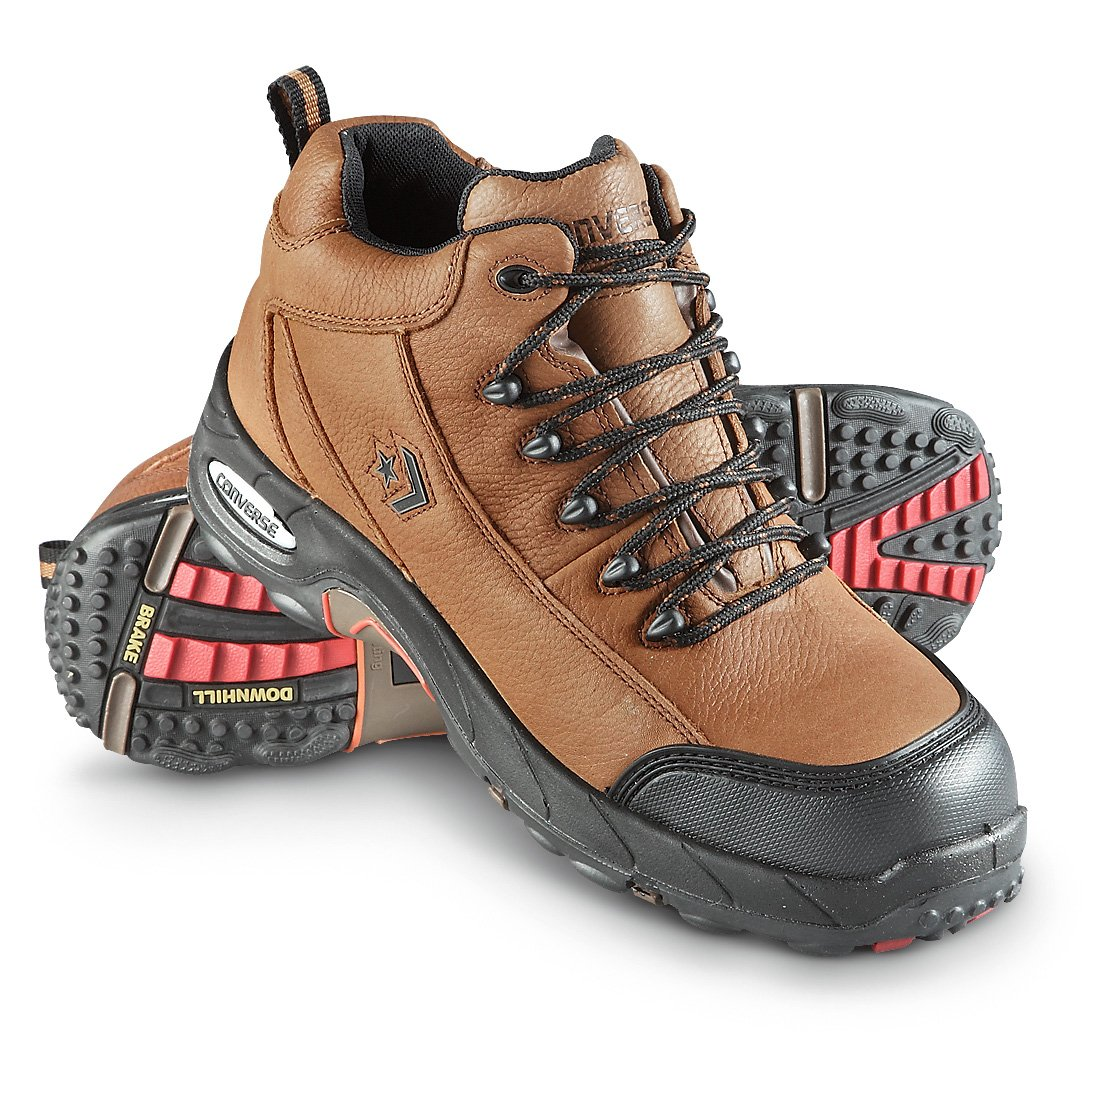 173a3cf6111db2 Converse shoes waterproof safety toe mens hiking shoes hiking trekking jpg  1112x1112 Converse work boots chemical